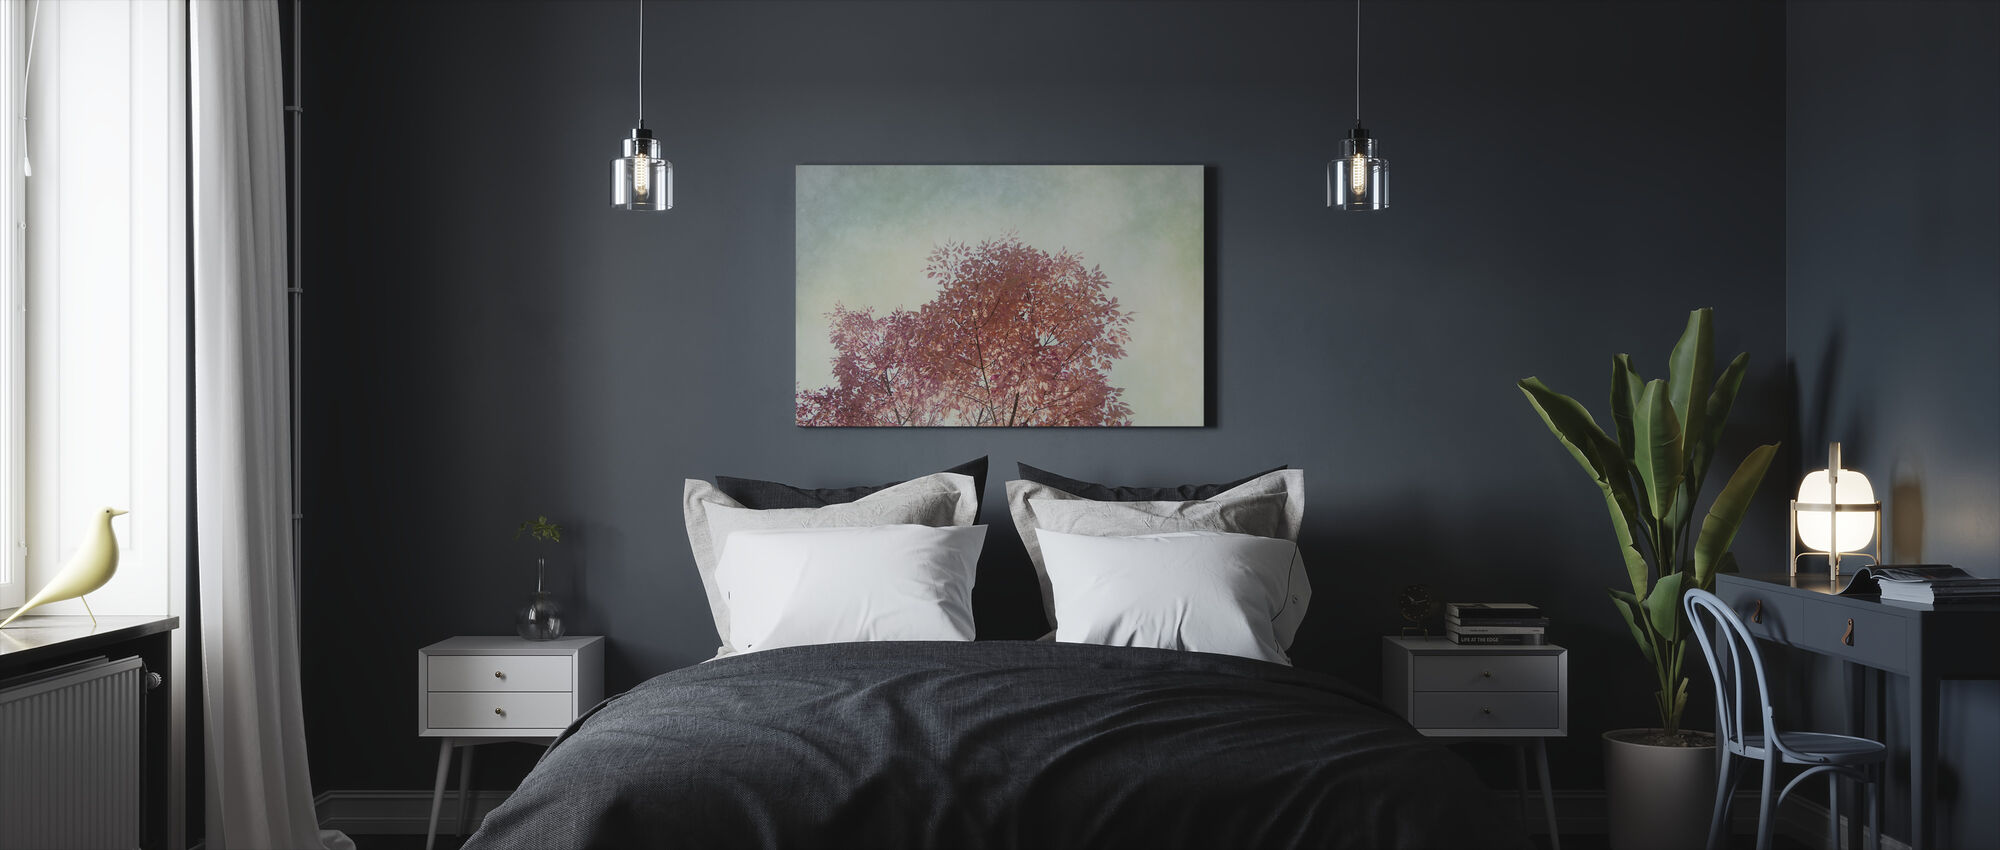 Looking Up 3 - Canvas print - Bedroom